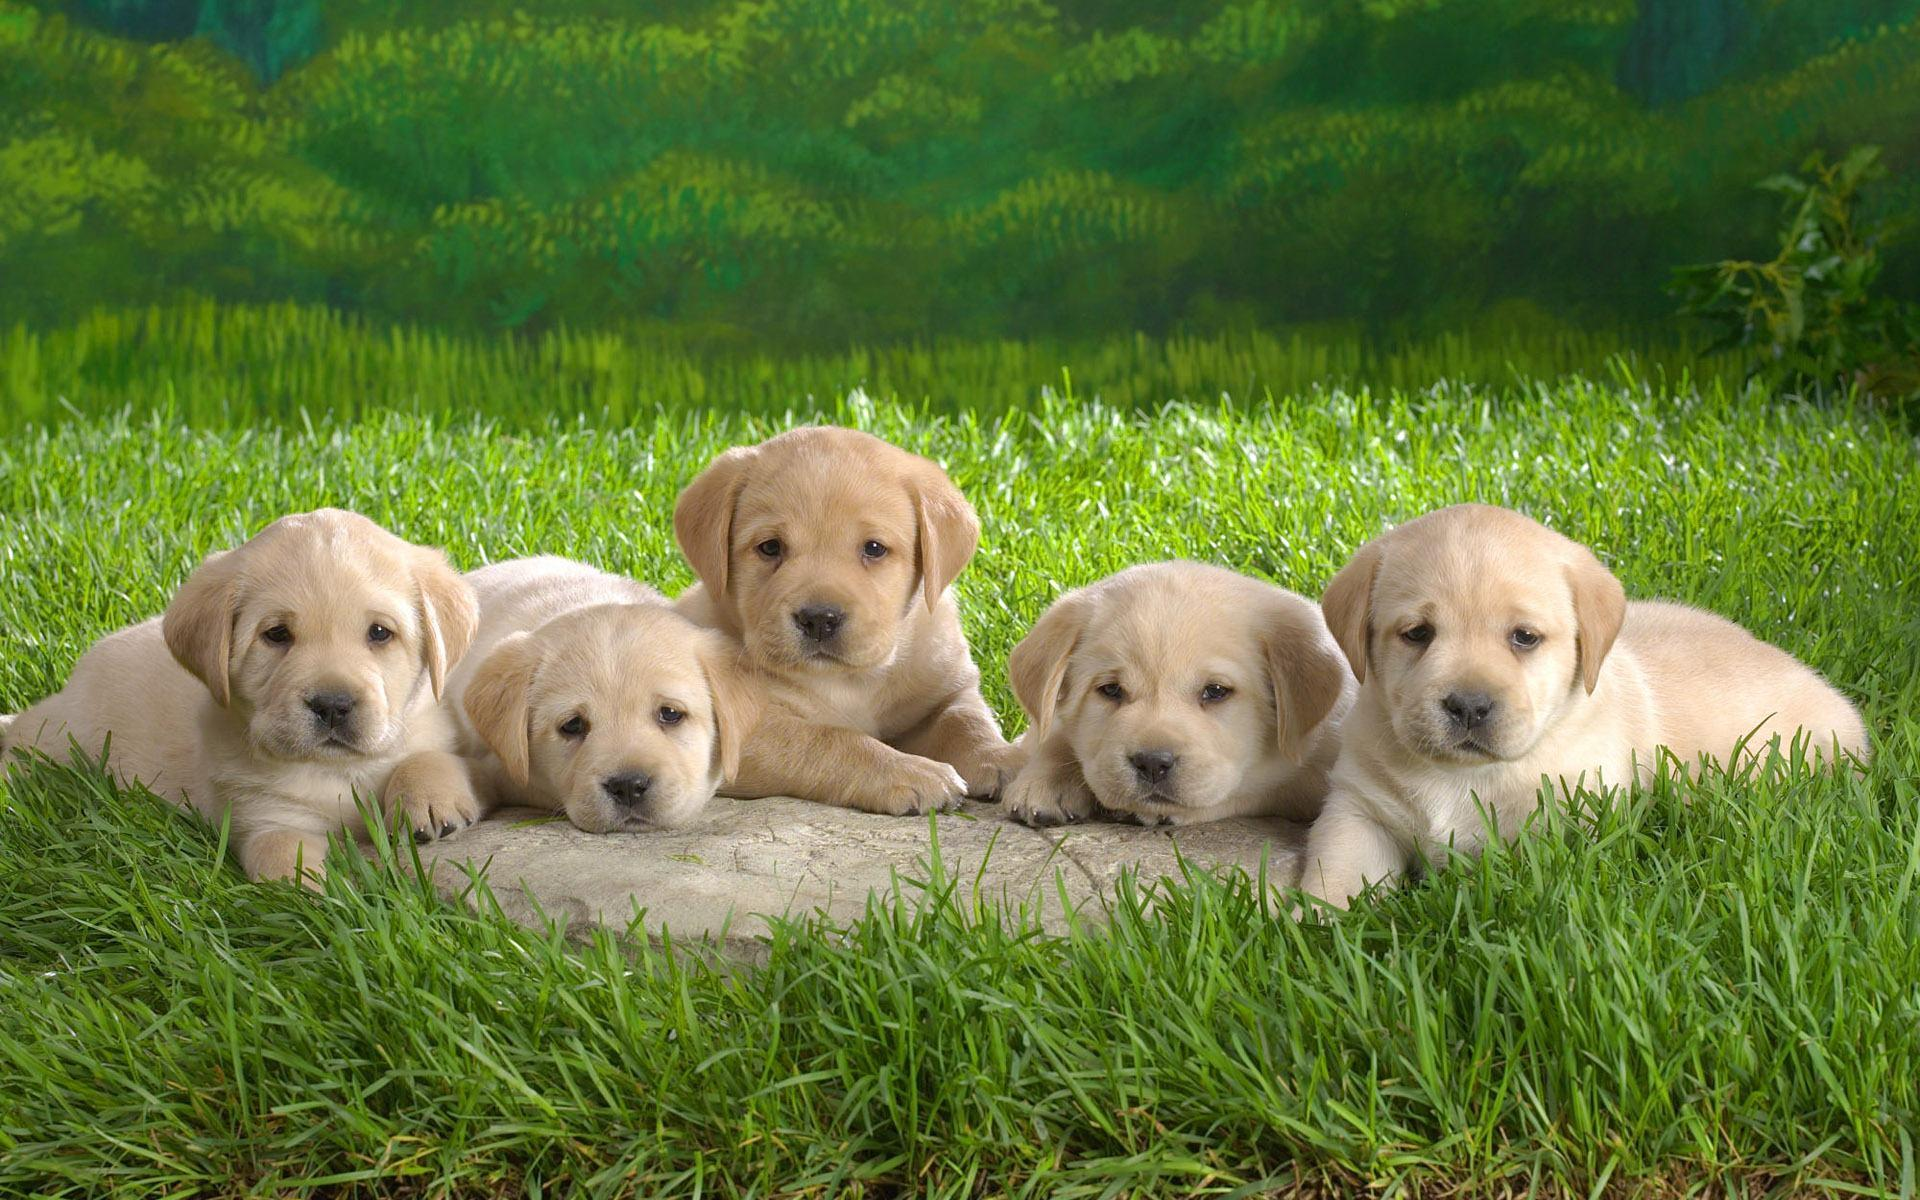 Free puppy wallpapers for computer wallpaper cave.